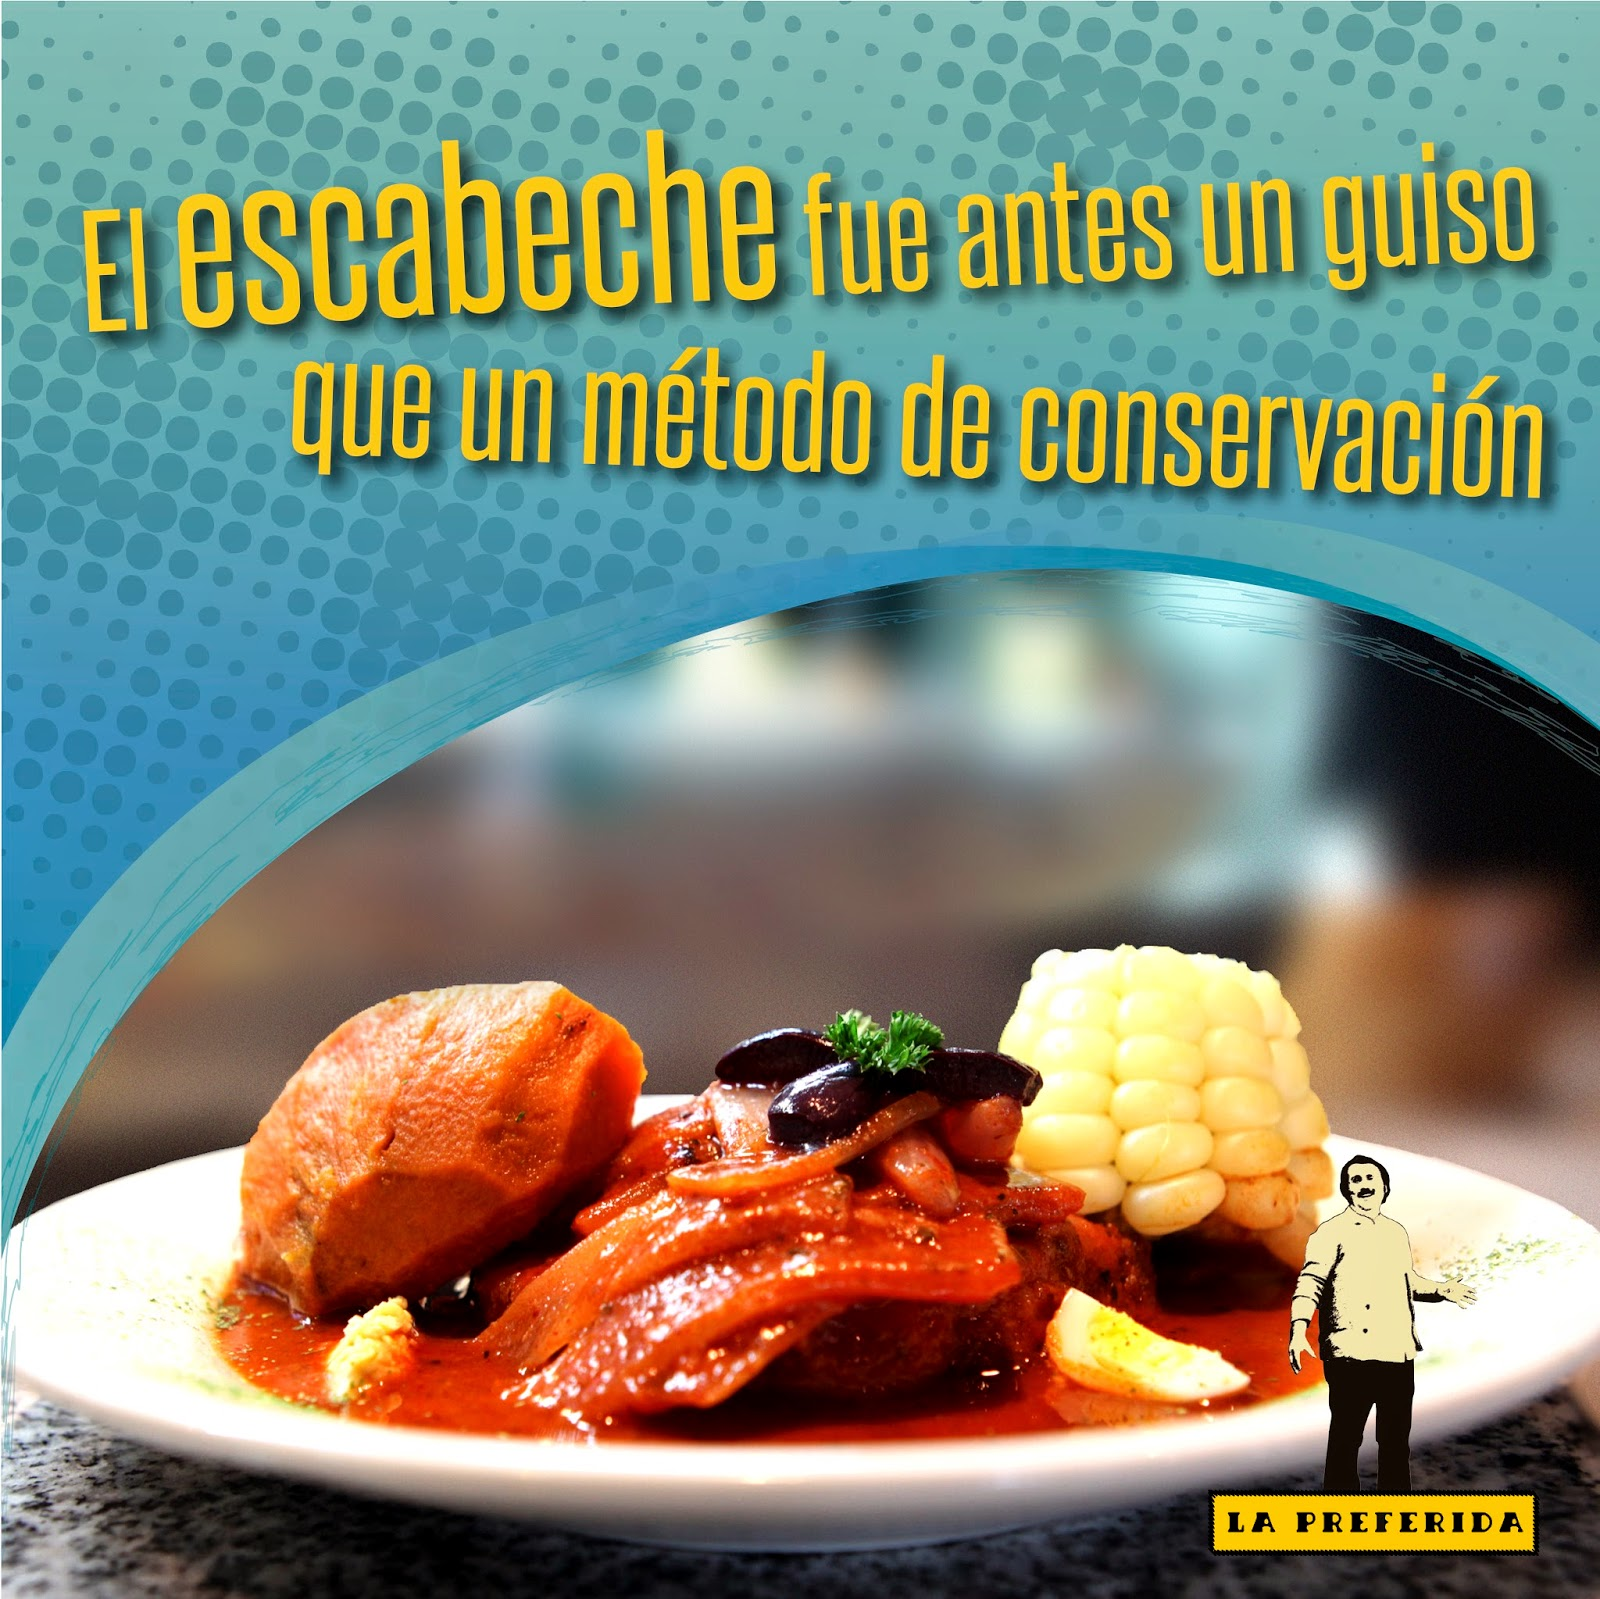 www.restaurantelapreferida.com